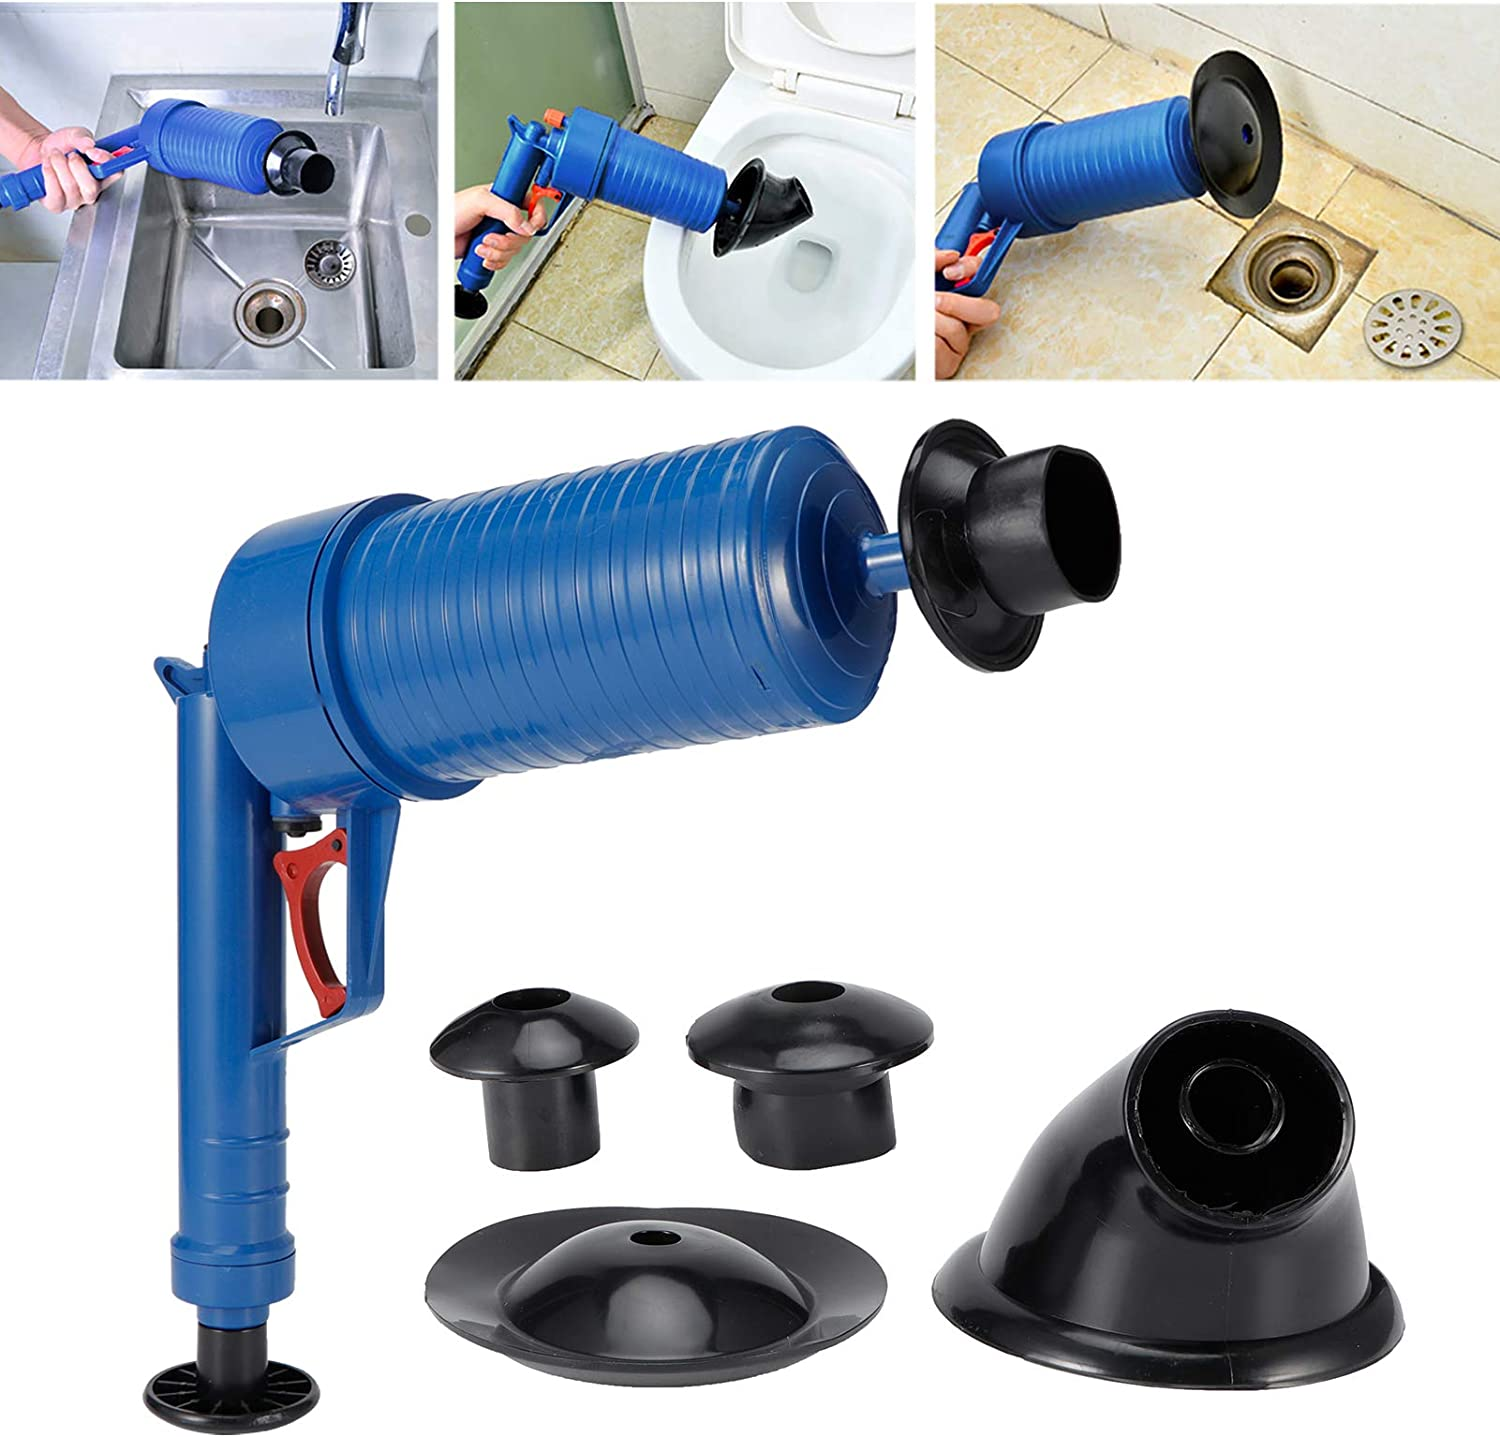 Toilet Plunger trend rank Max 87% OFF 4 Kinds Of Adapters Drain Remover for Clog Floor